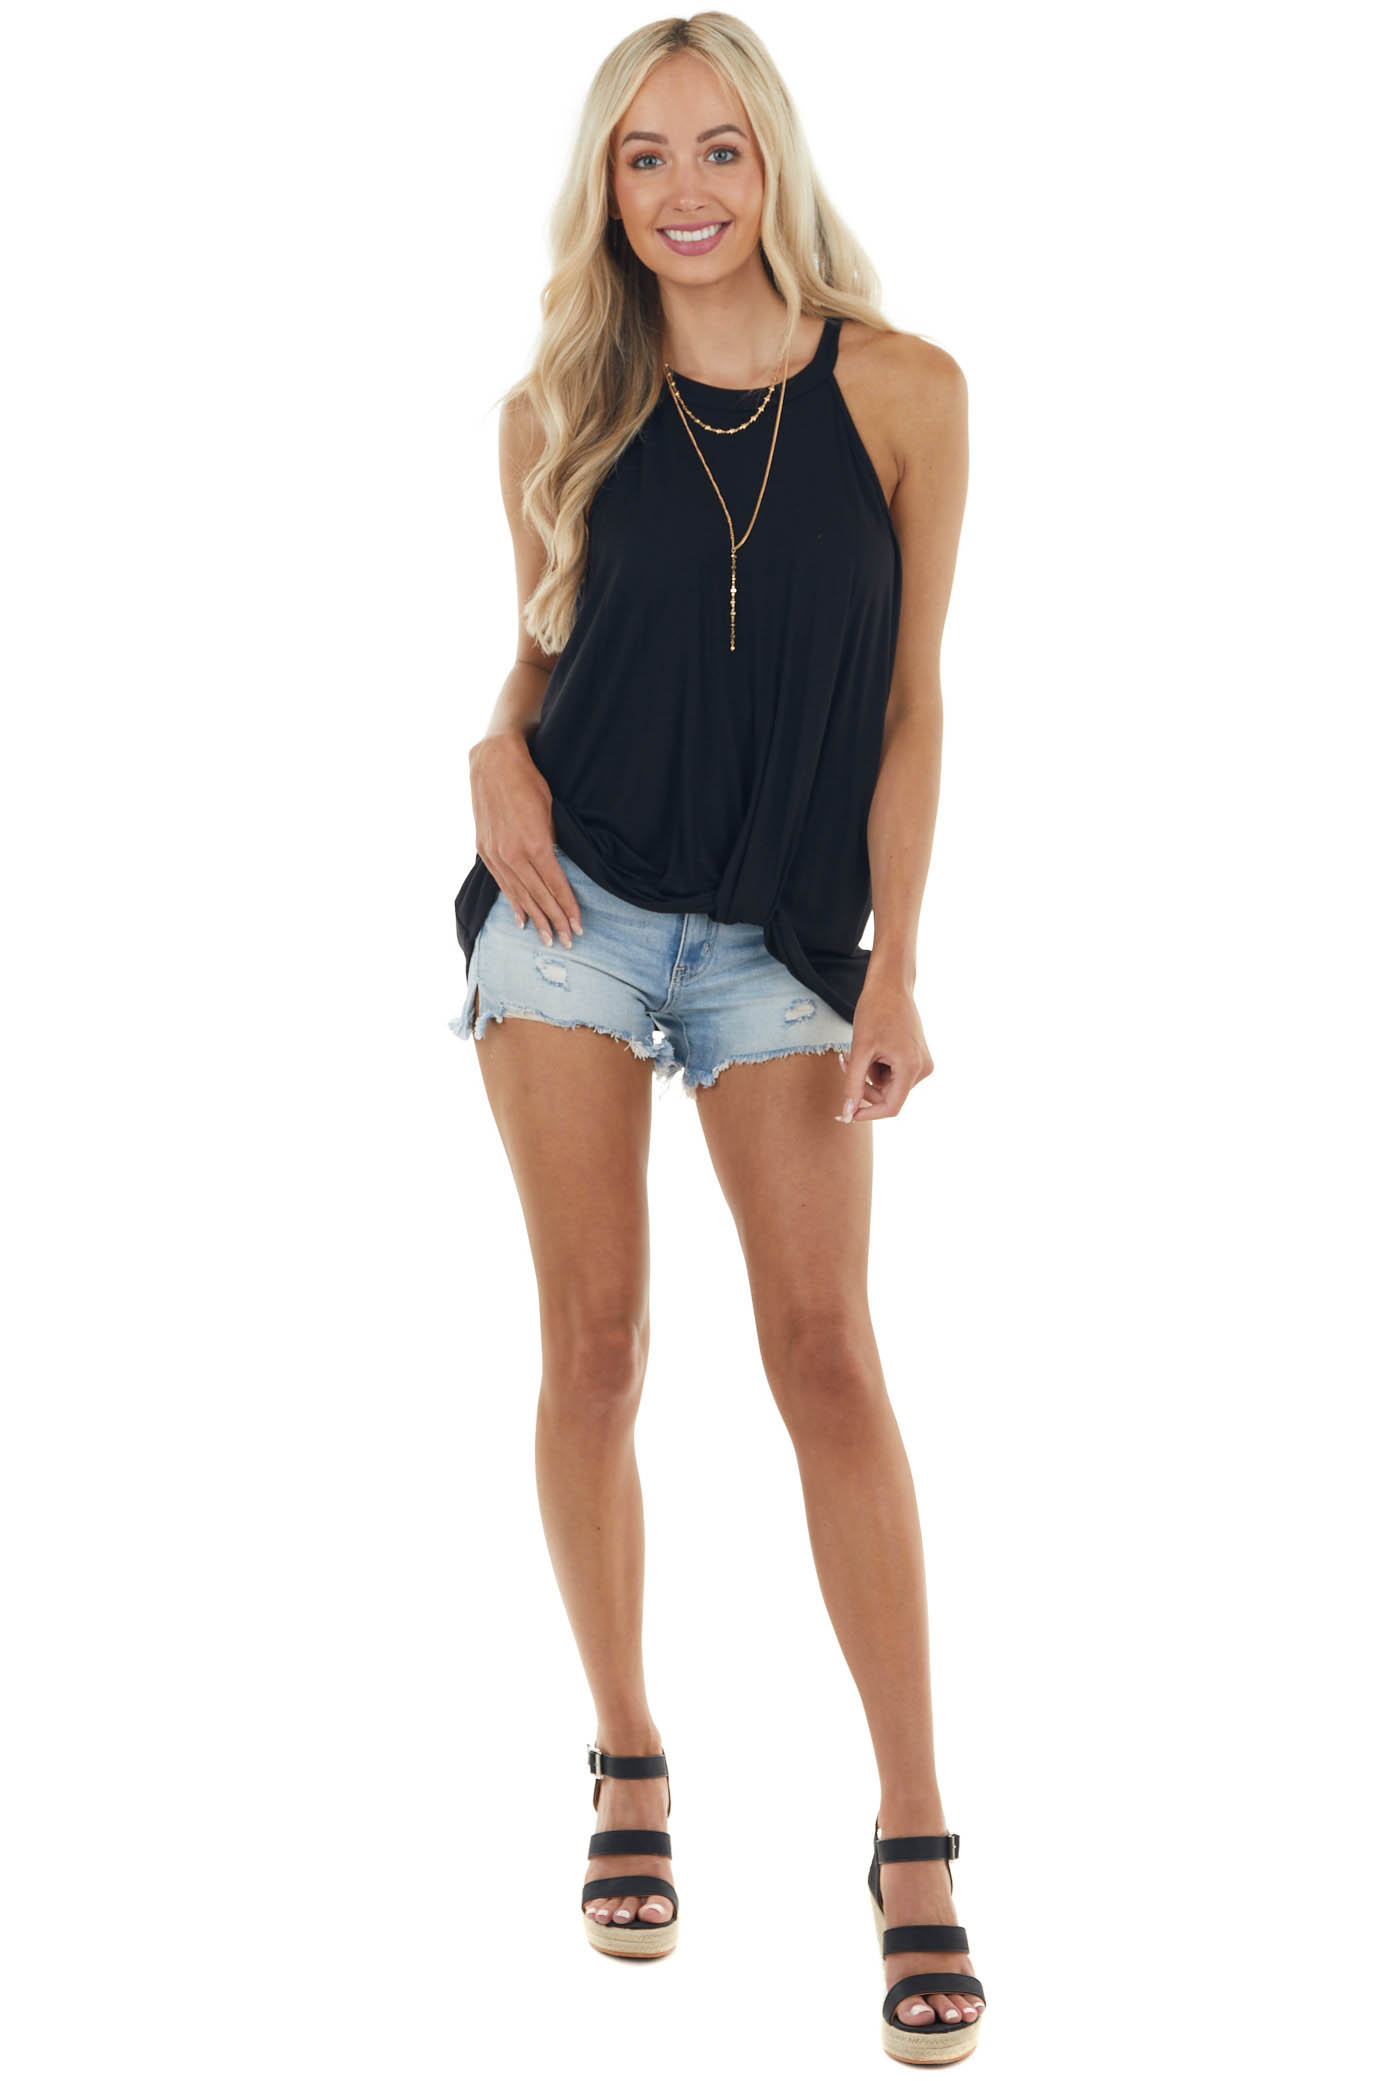 Black Front Twist Stretchy Knit Top with Halter Neck